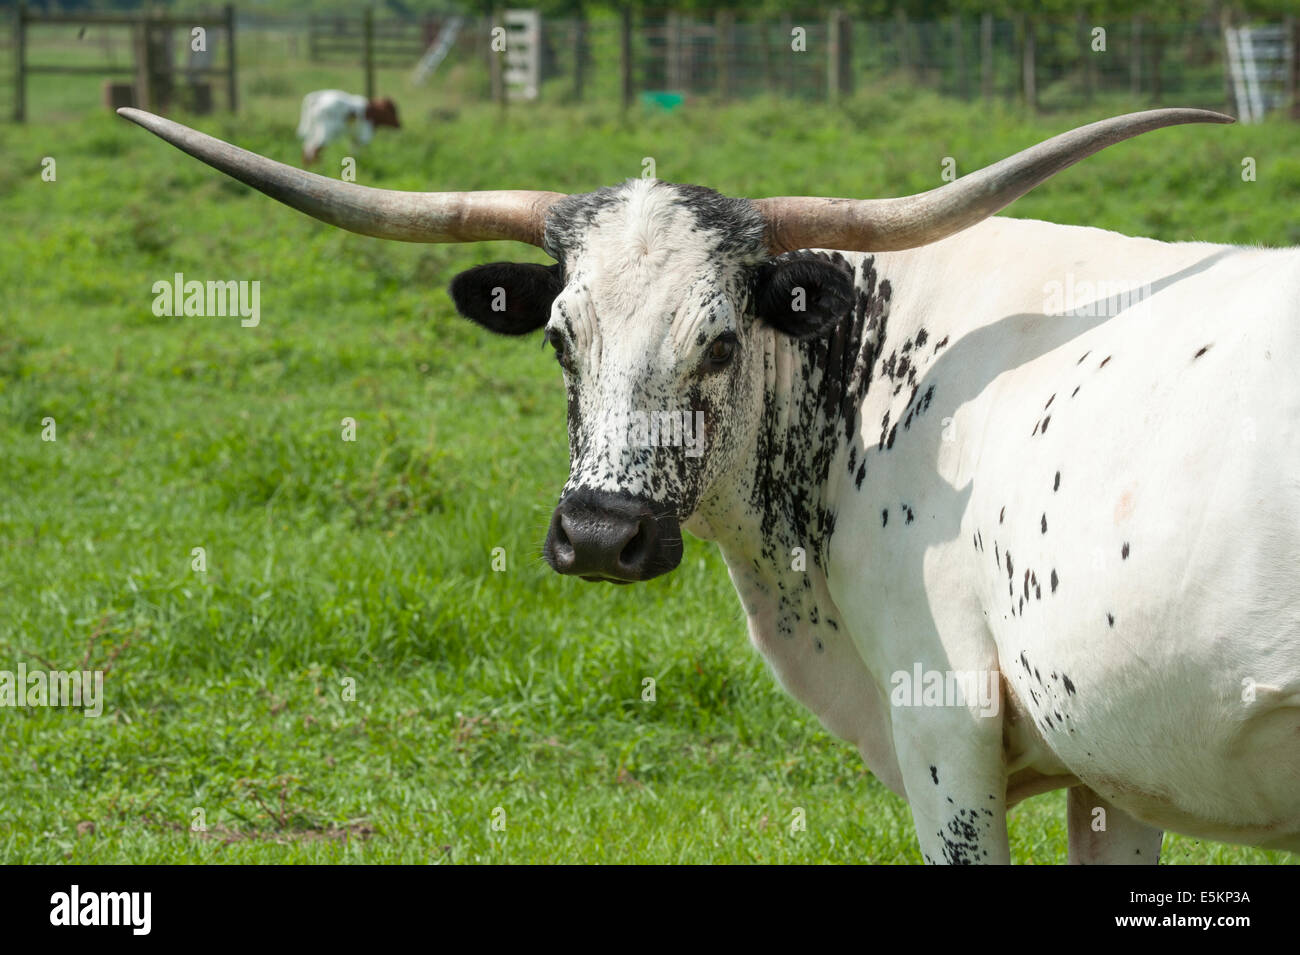 Texas Longhorn cattle - Stock Image